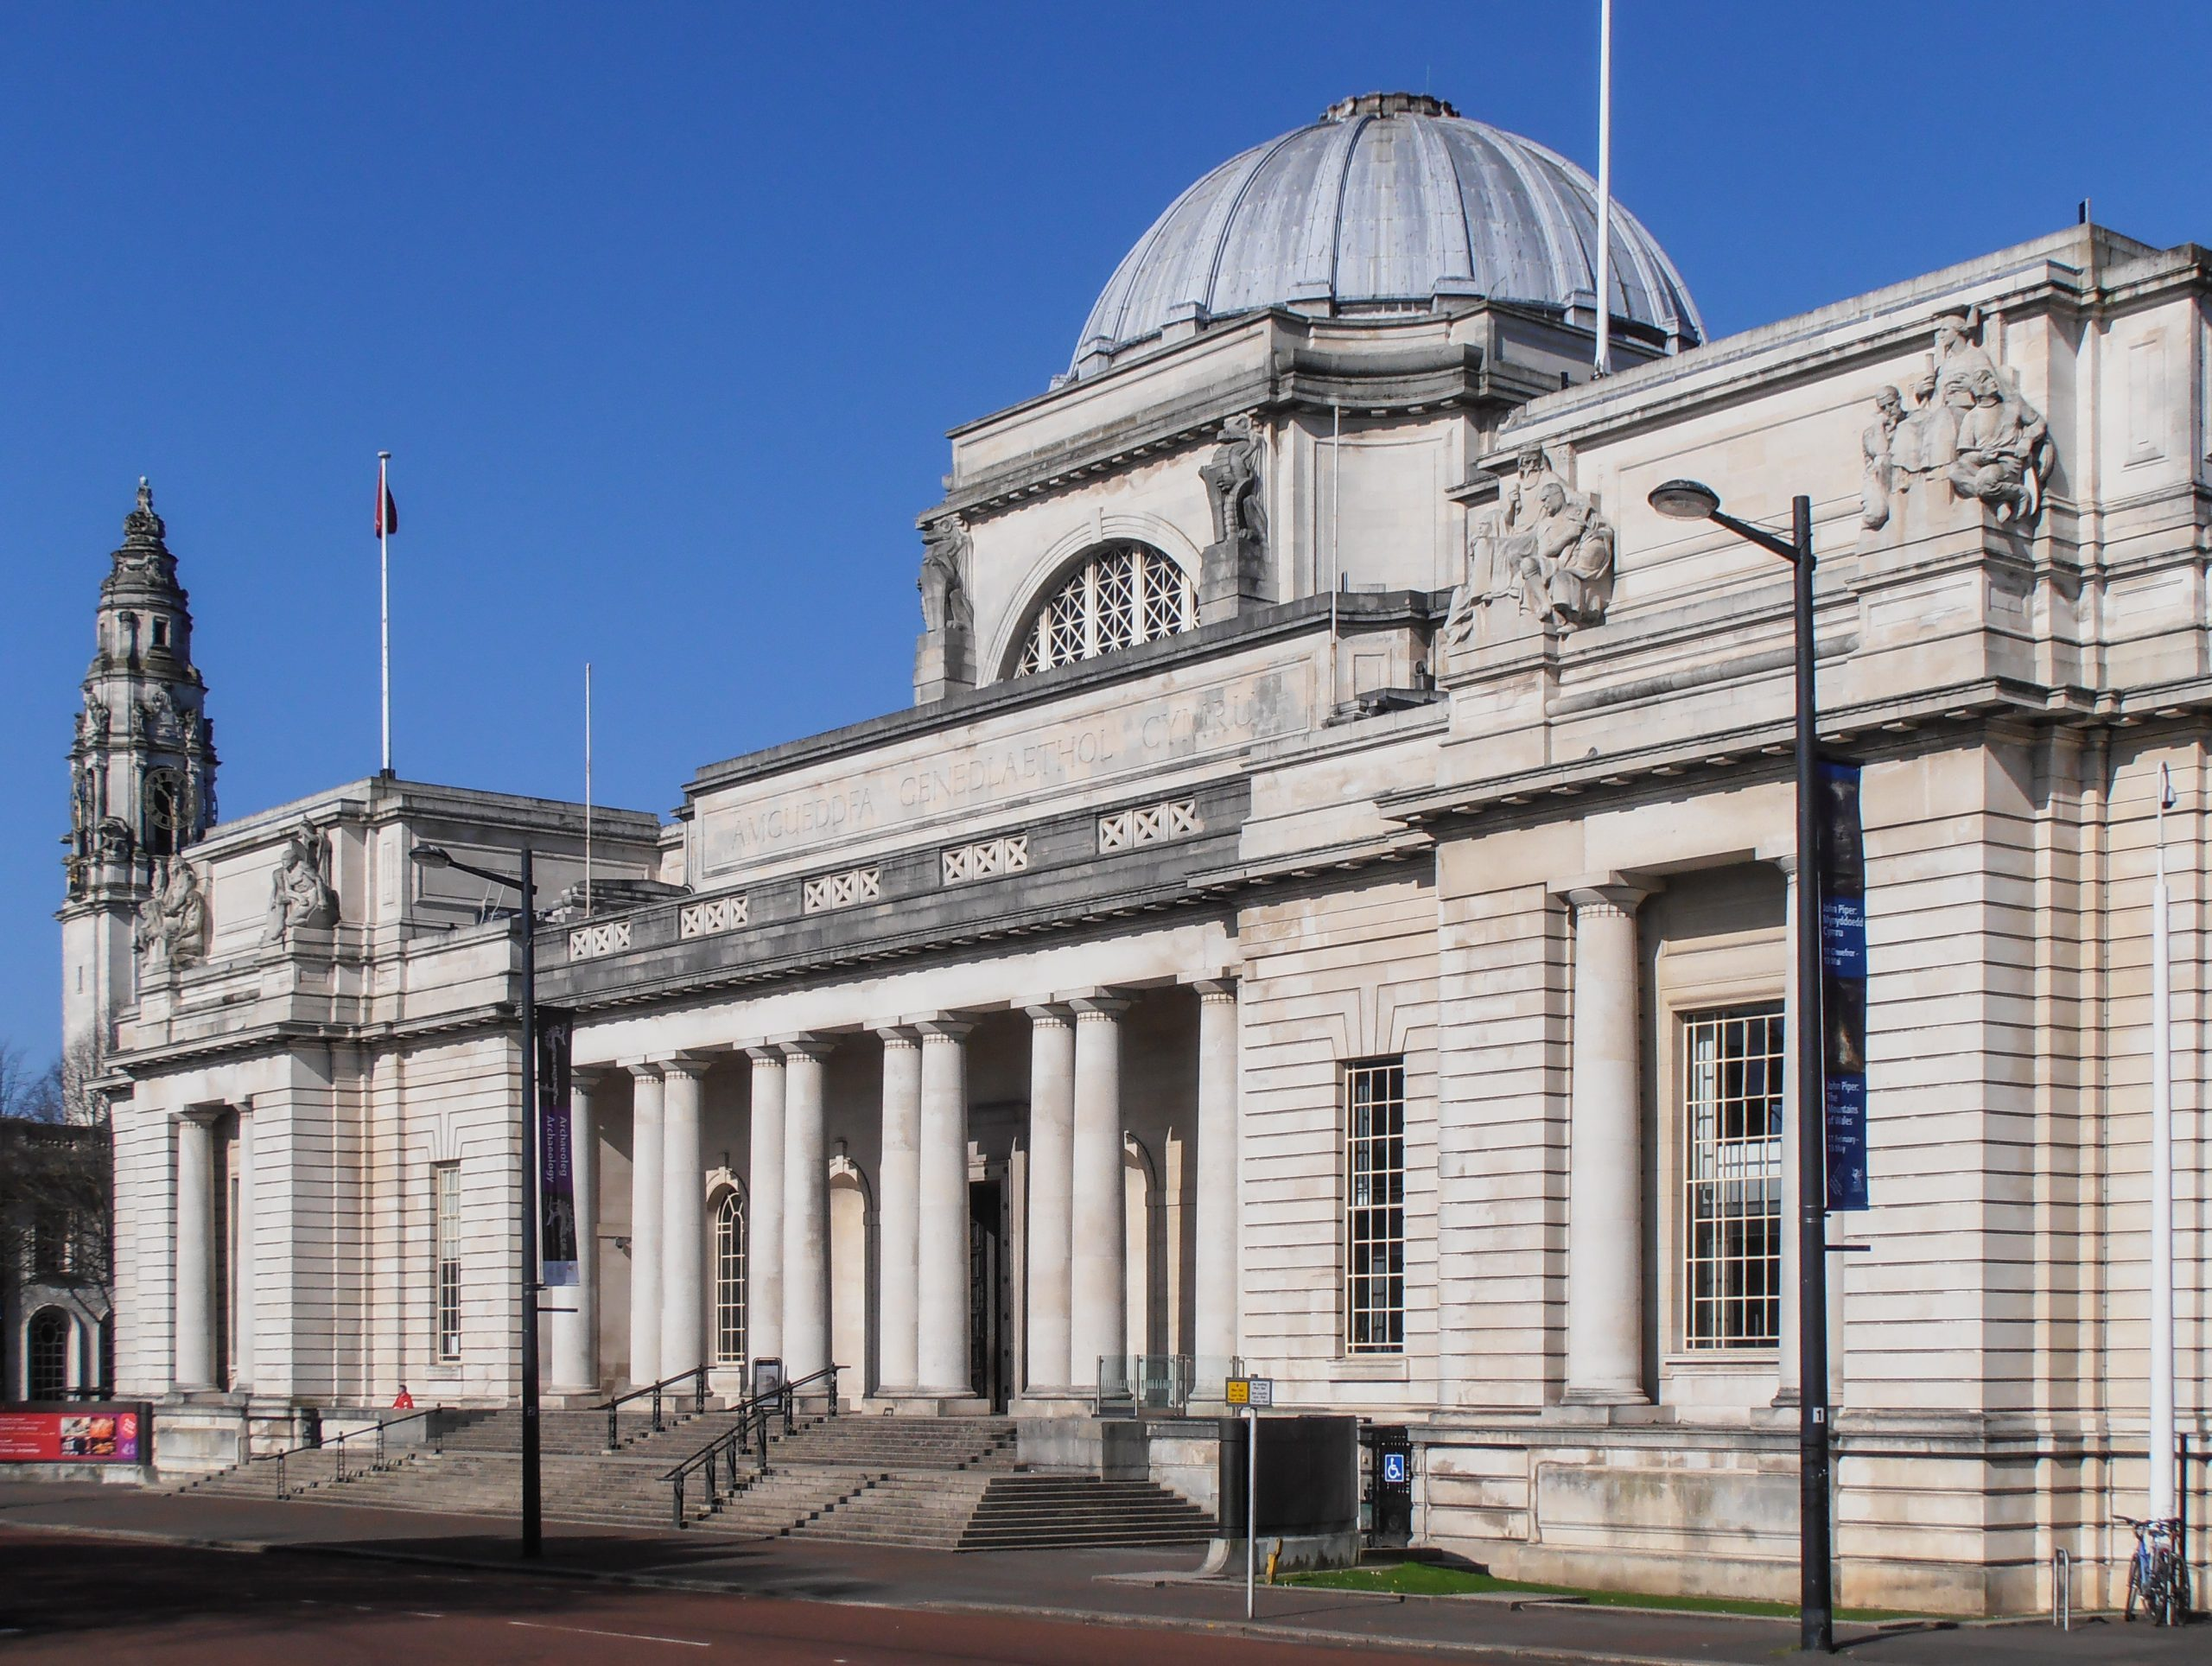 Amgueddfa Genedlaethol Caerdydd (National Museum Cardiff) is among the museums already closed due to lockdown restrictions